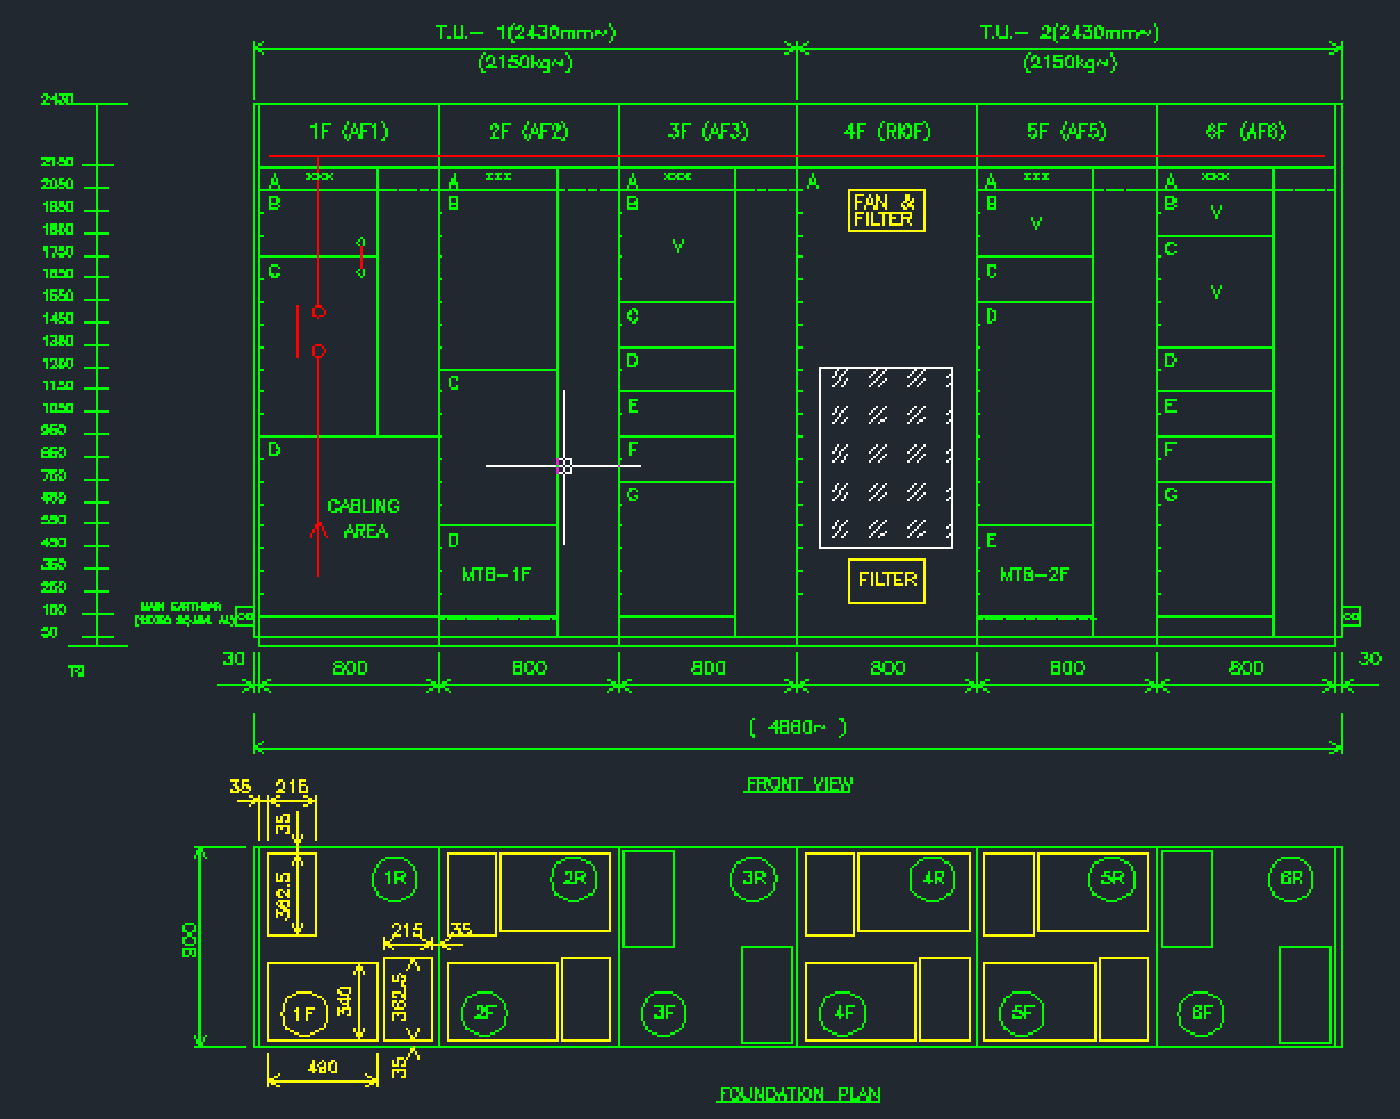 vfd panel wiring diagram winchester model 94 parts sipro tech - switchboard and control design service